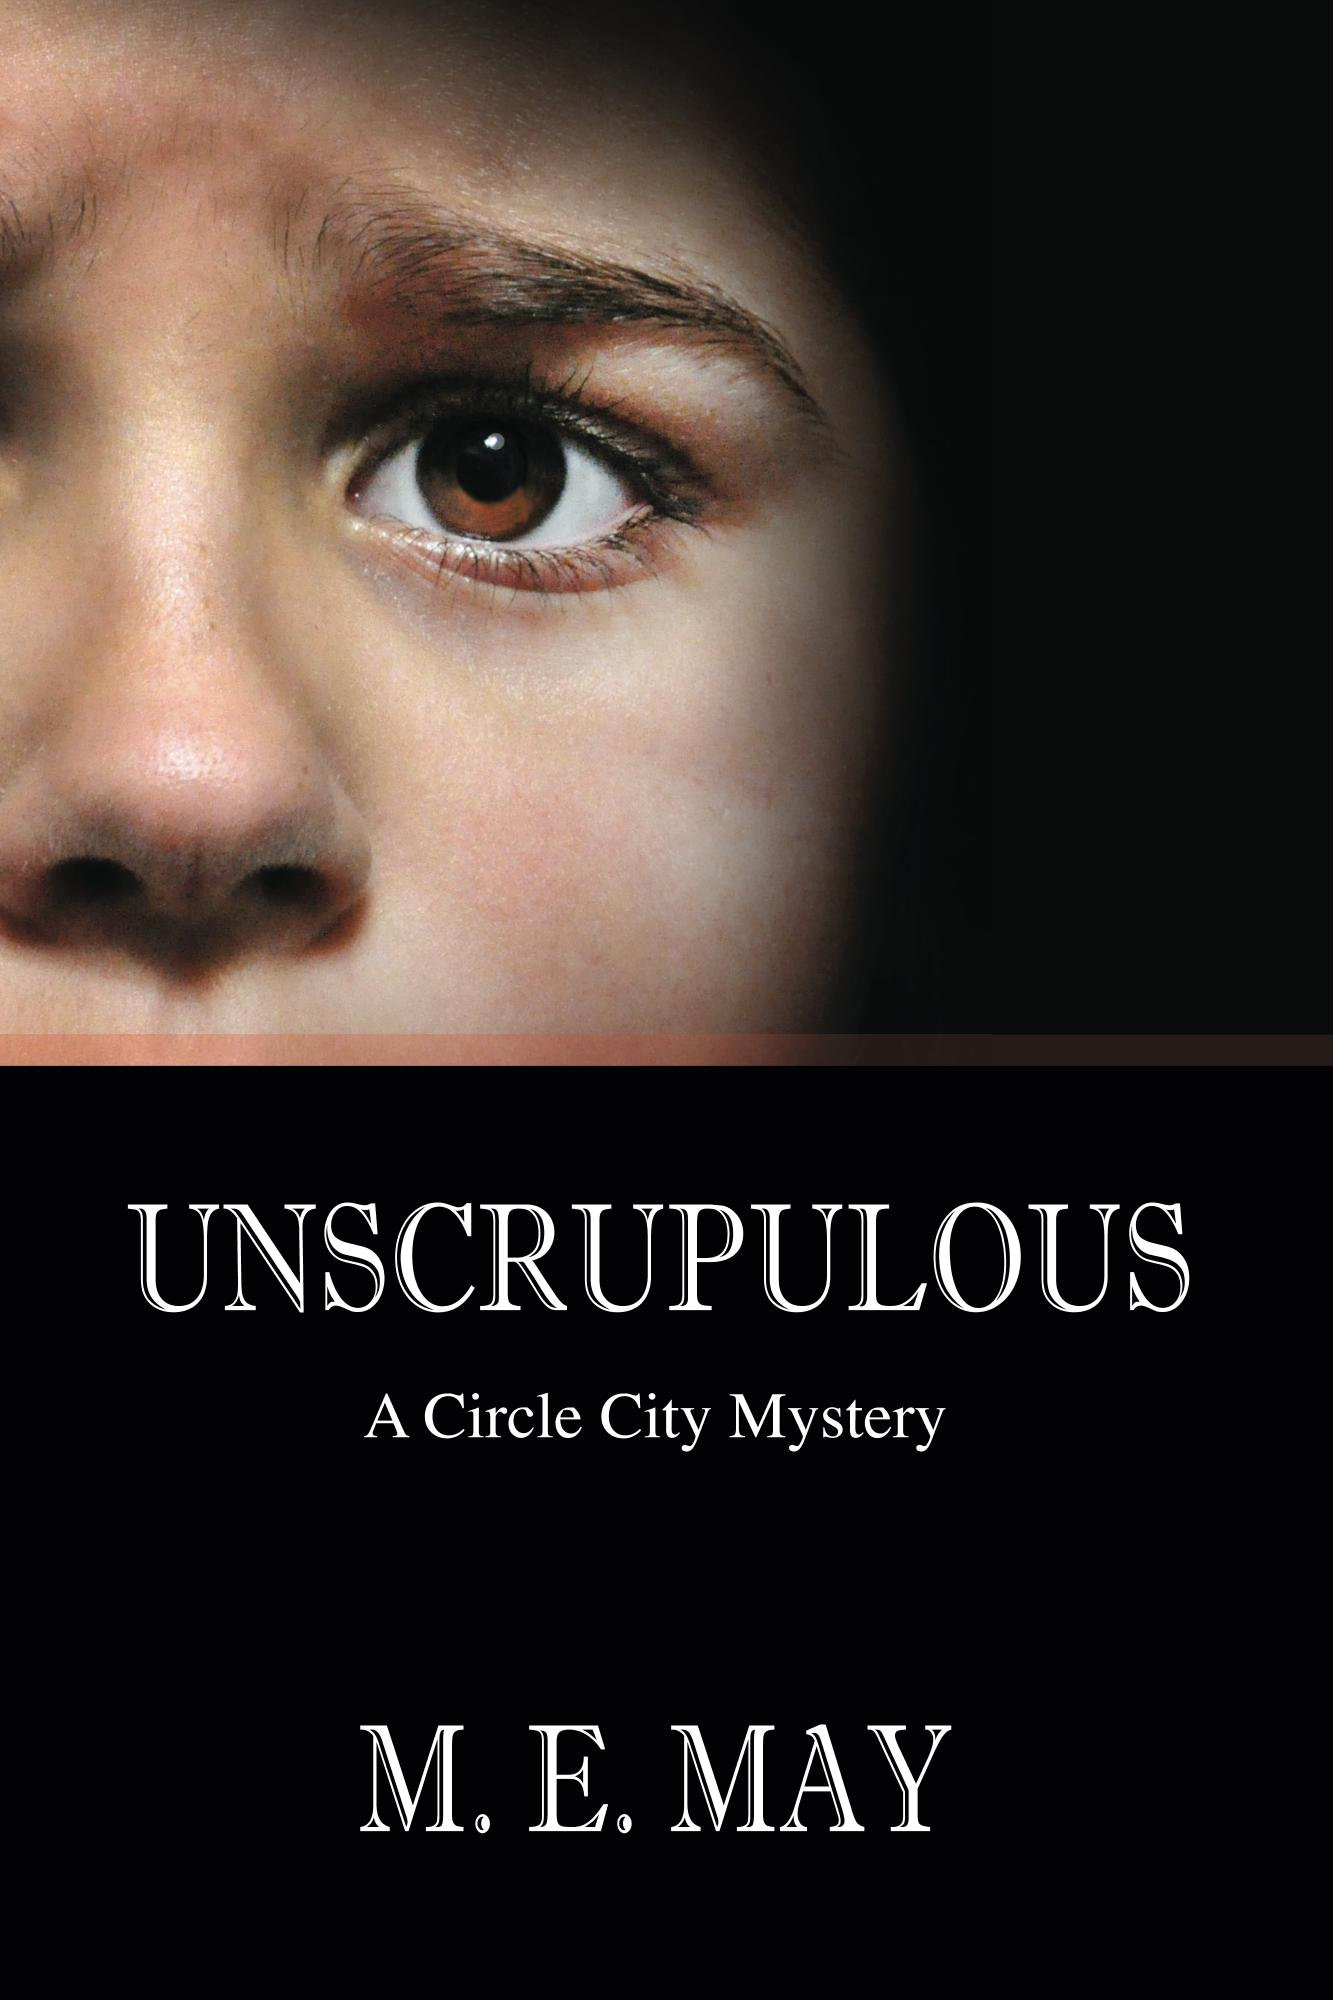 Unscrupulous by M. E. May